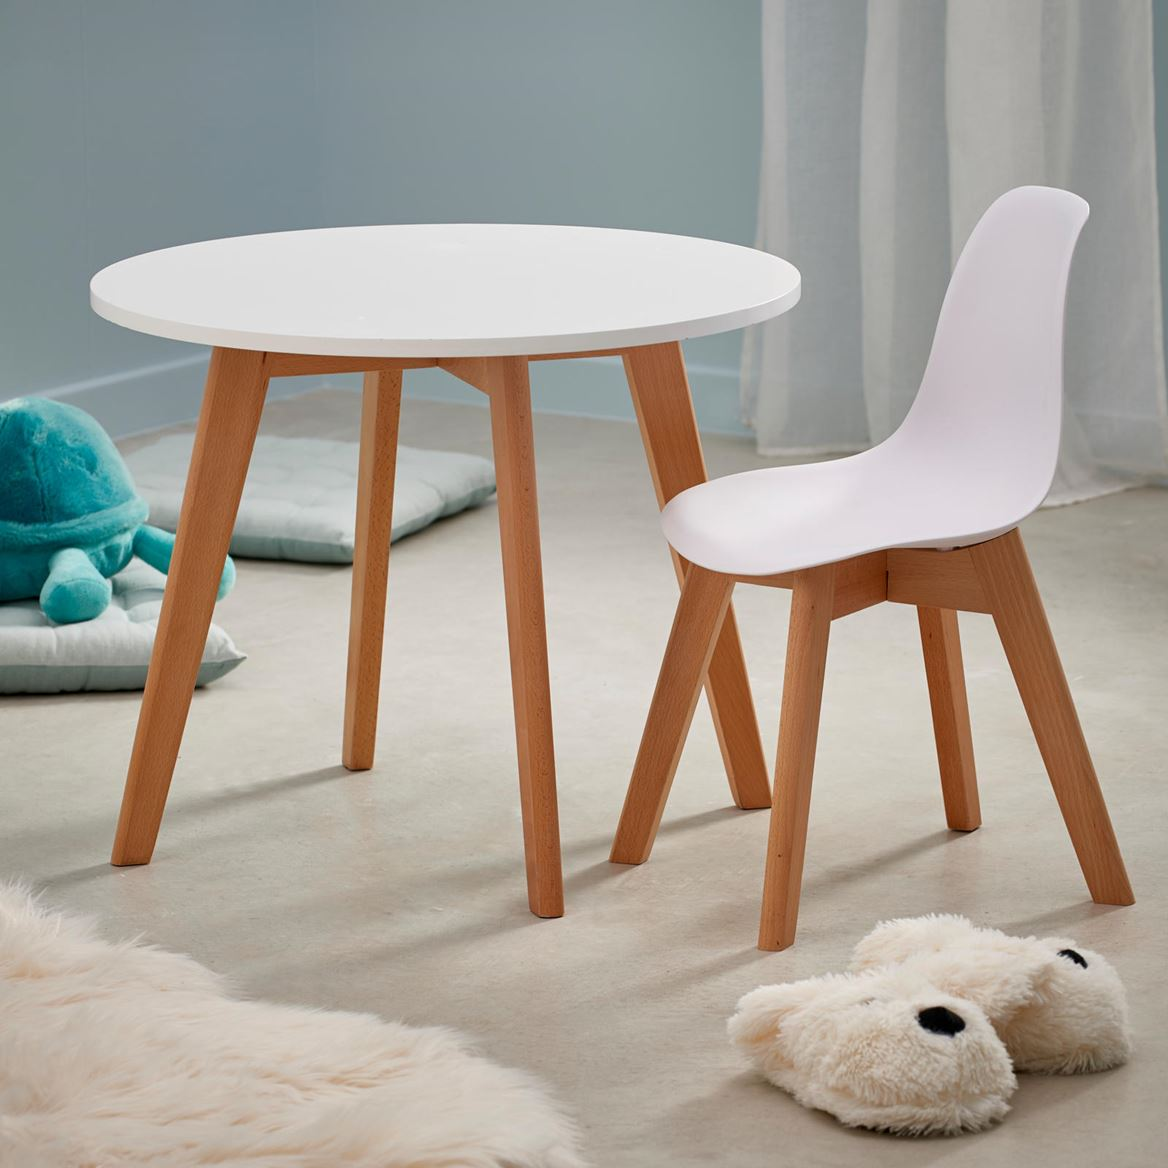 mathias table pour enfants produits feelgood pour la. Black Bedroom Furniture Sets. Home Design Ideas